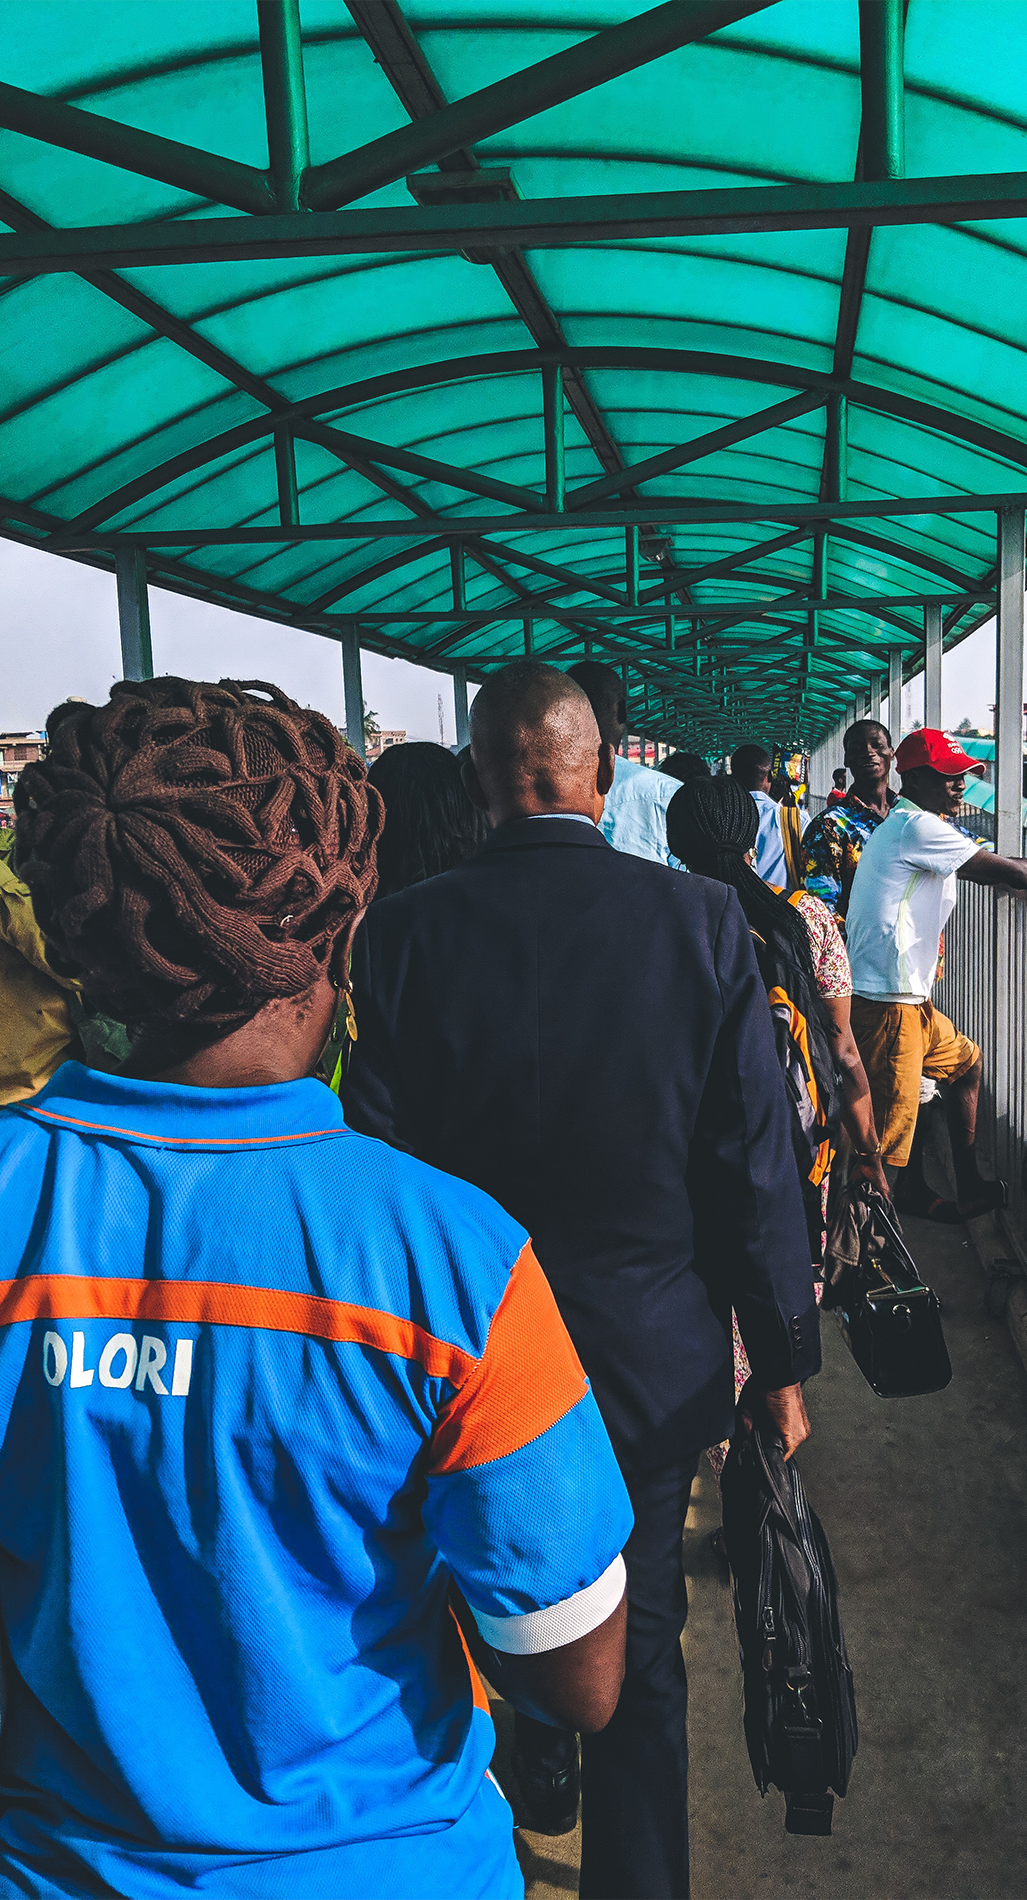 Nigerian citizens. Source: Joshua Oluwagbemiga via Unsplash